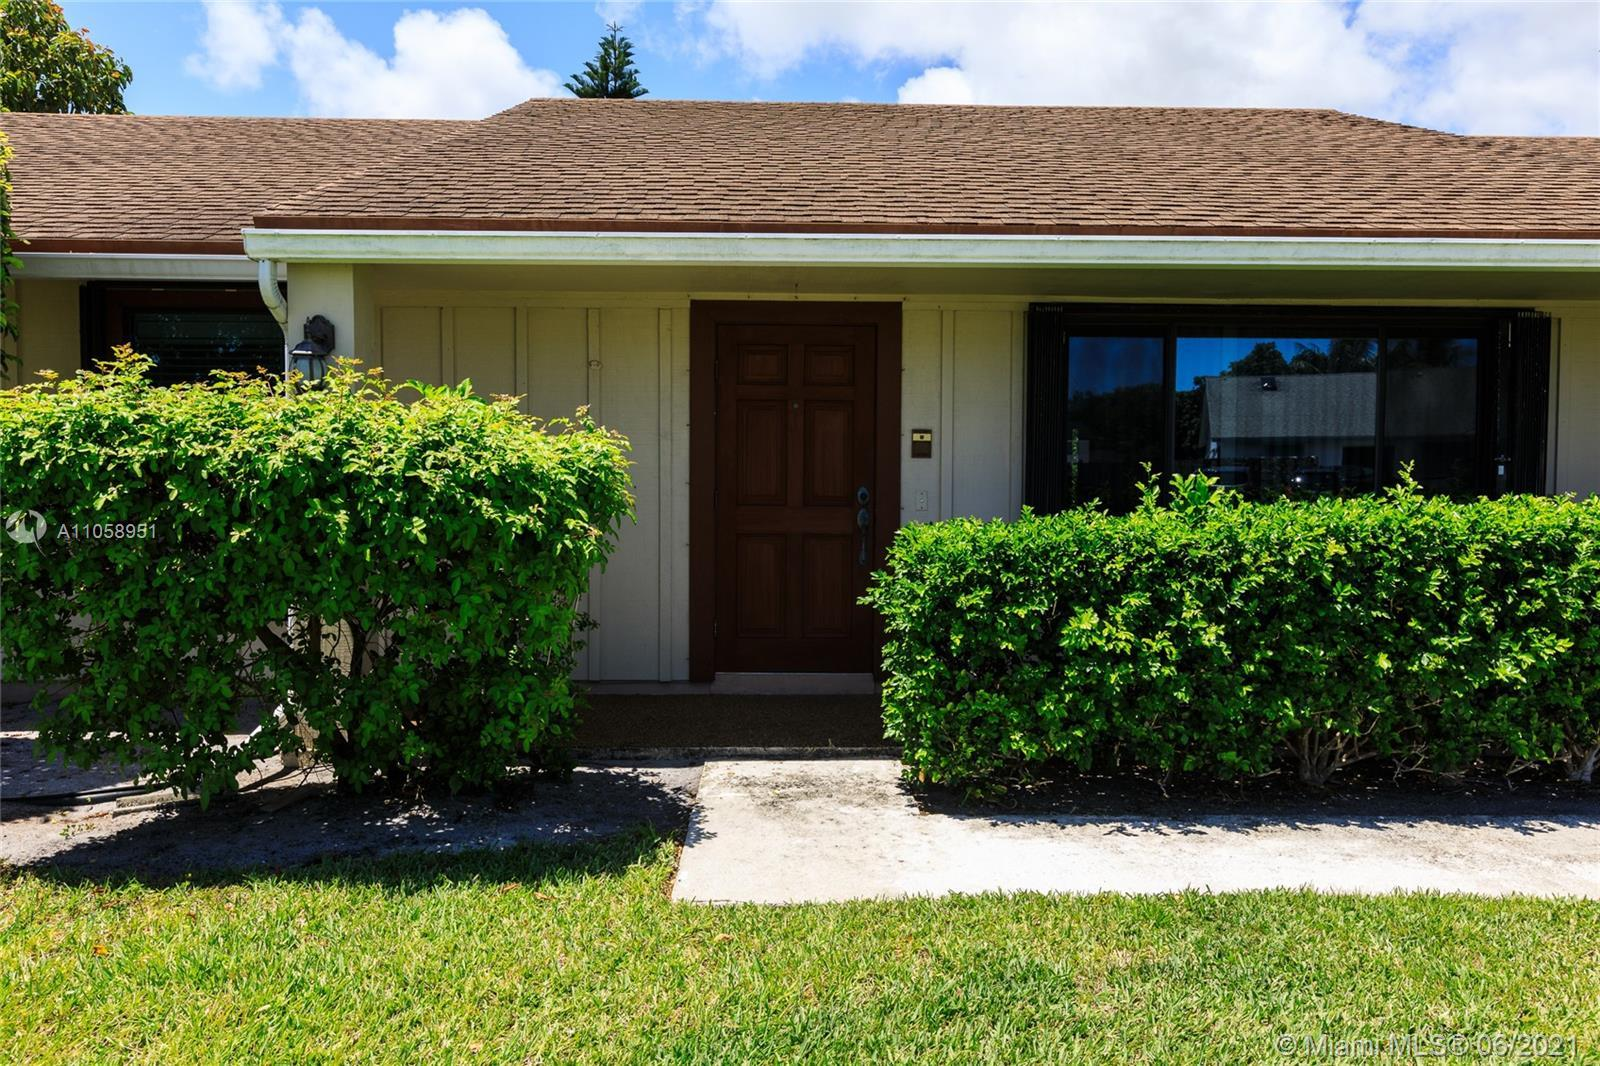 Ranch home in East Boca with big backyard and pool. The house features large bedrooms and vaulted ce